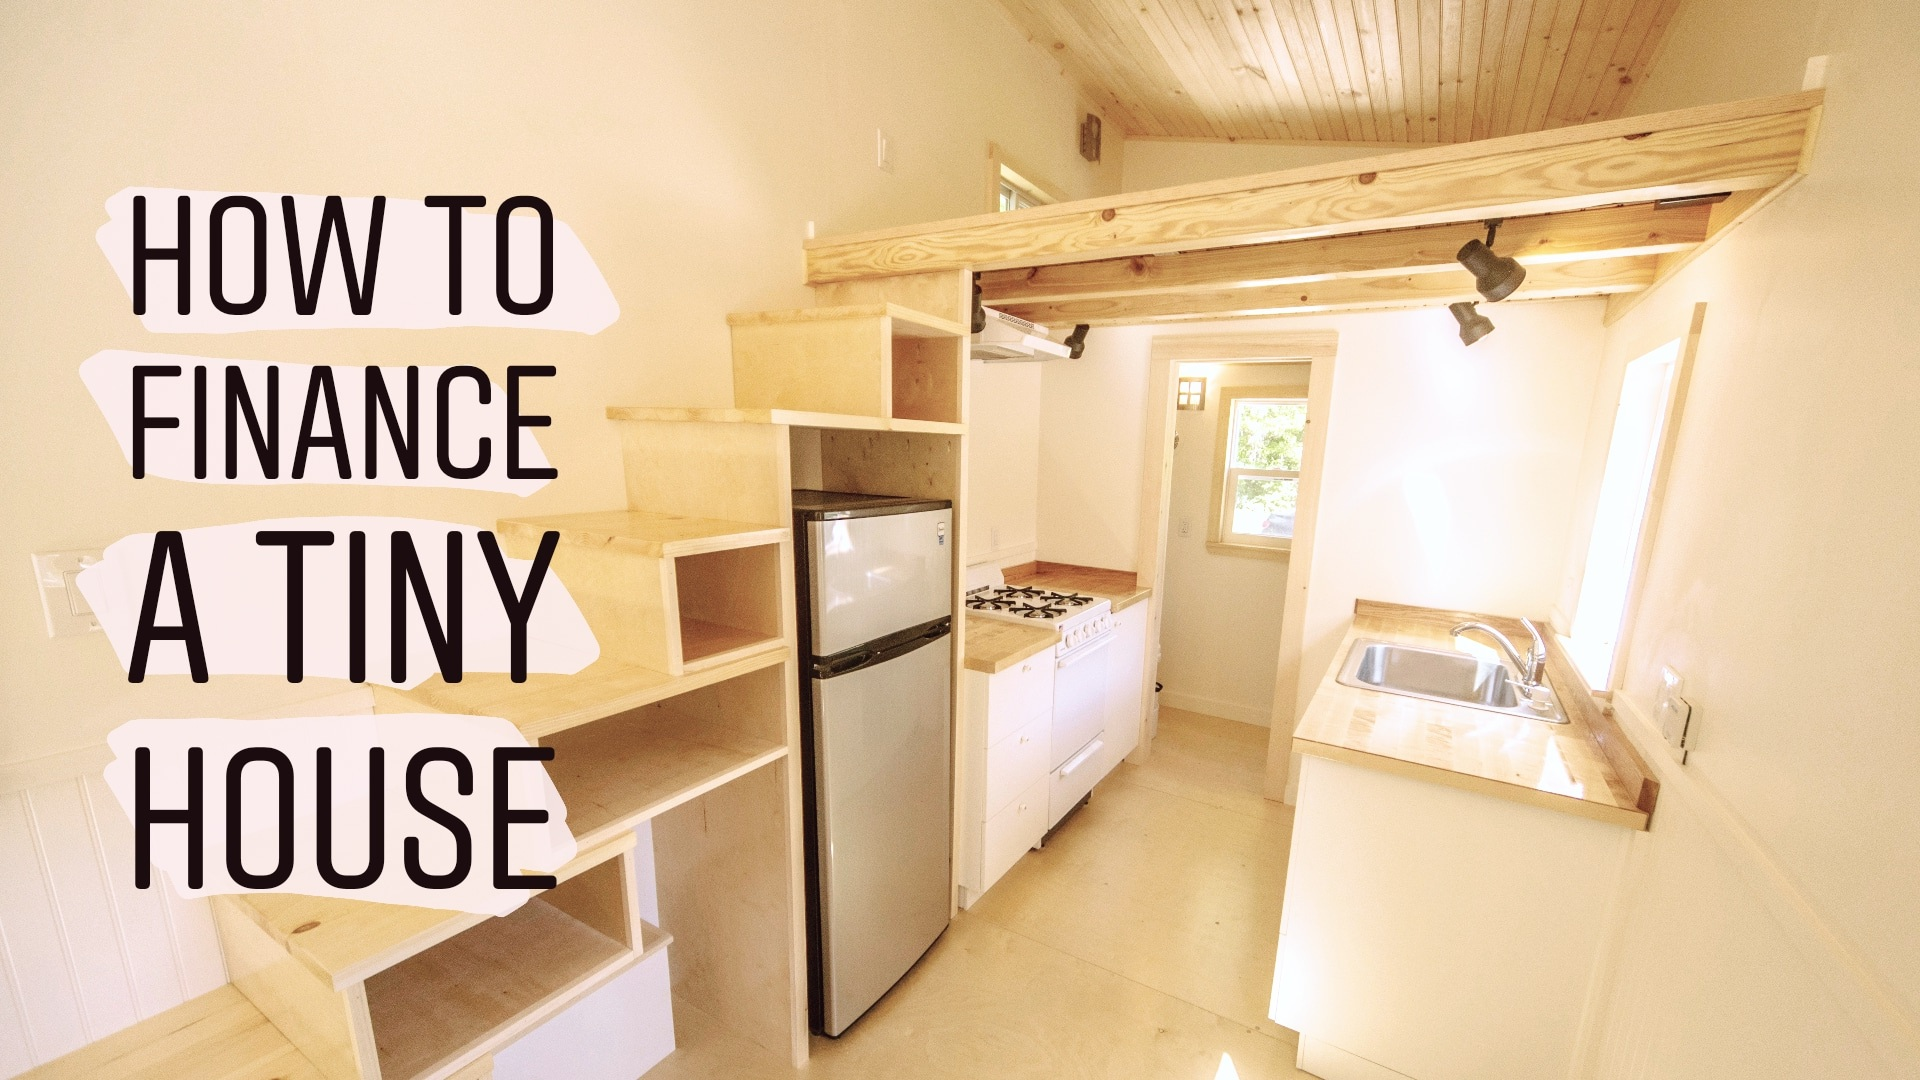 how+to+finance+a+tiny+house.jpg